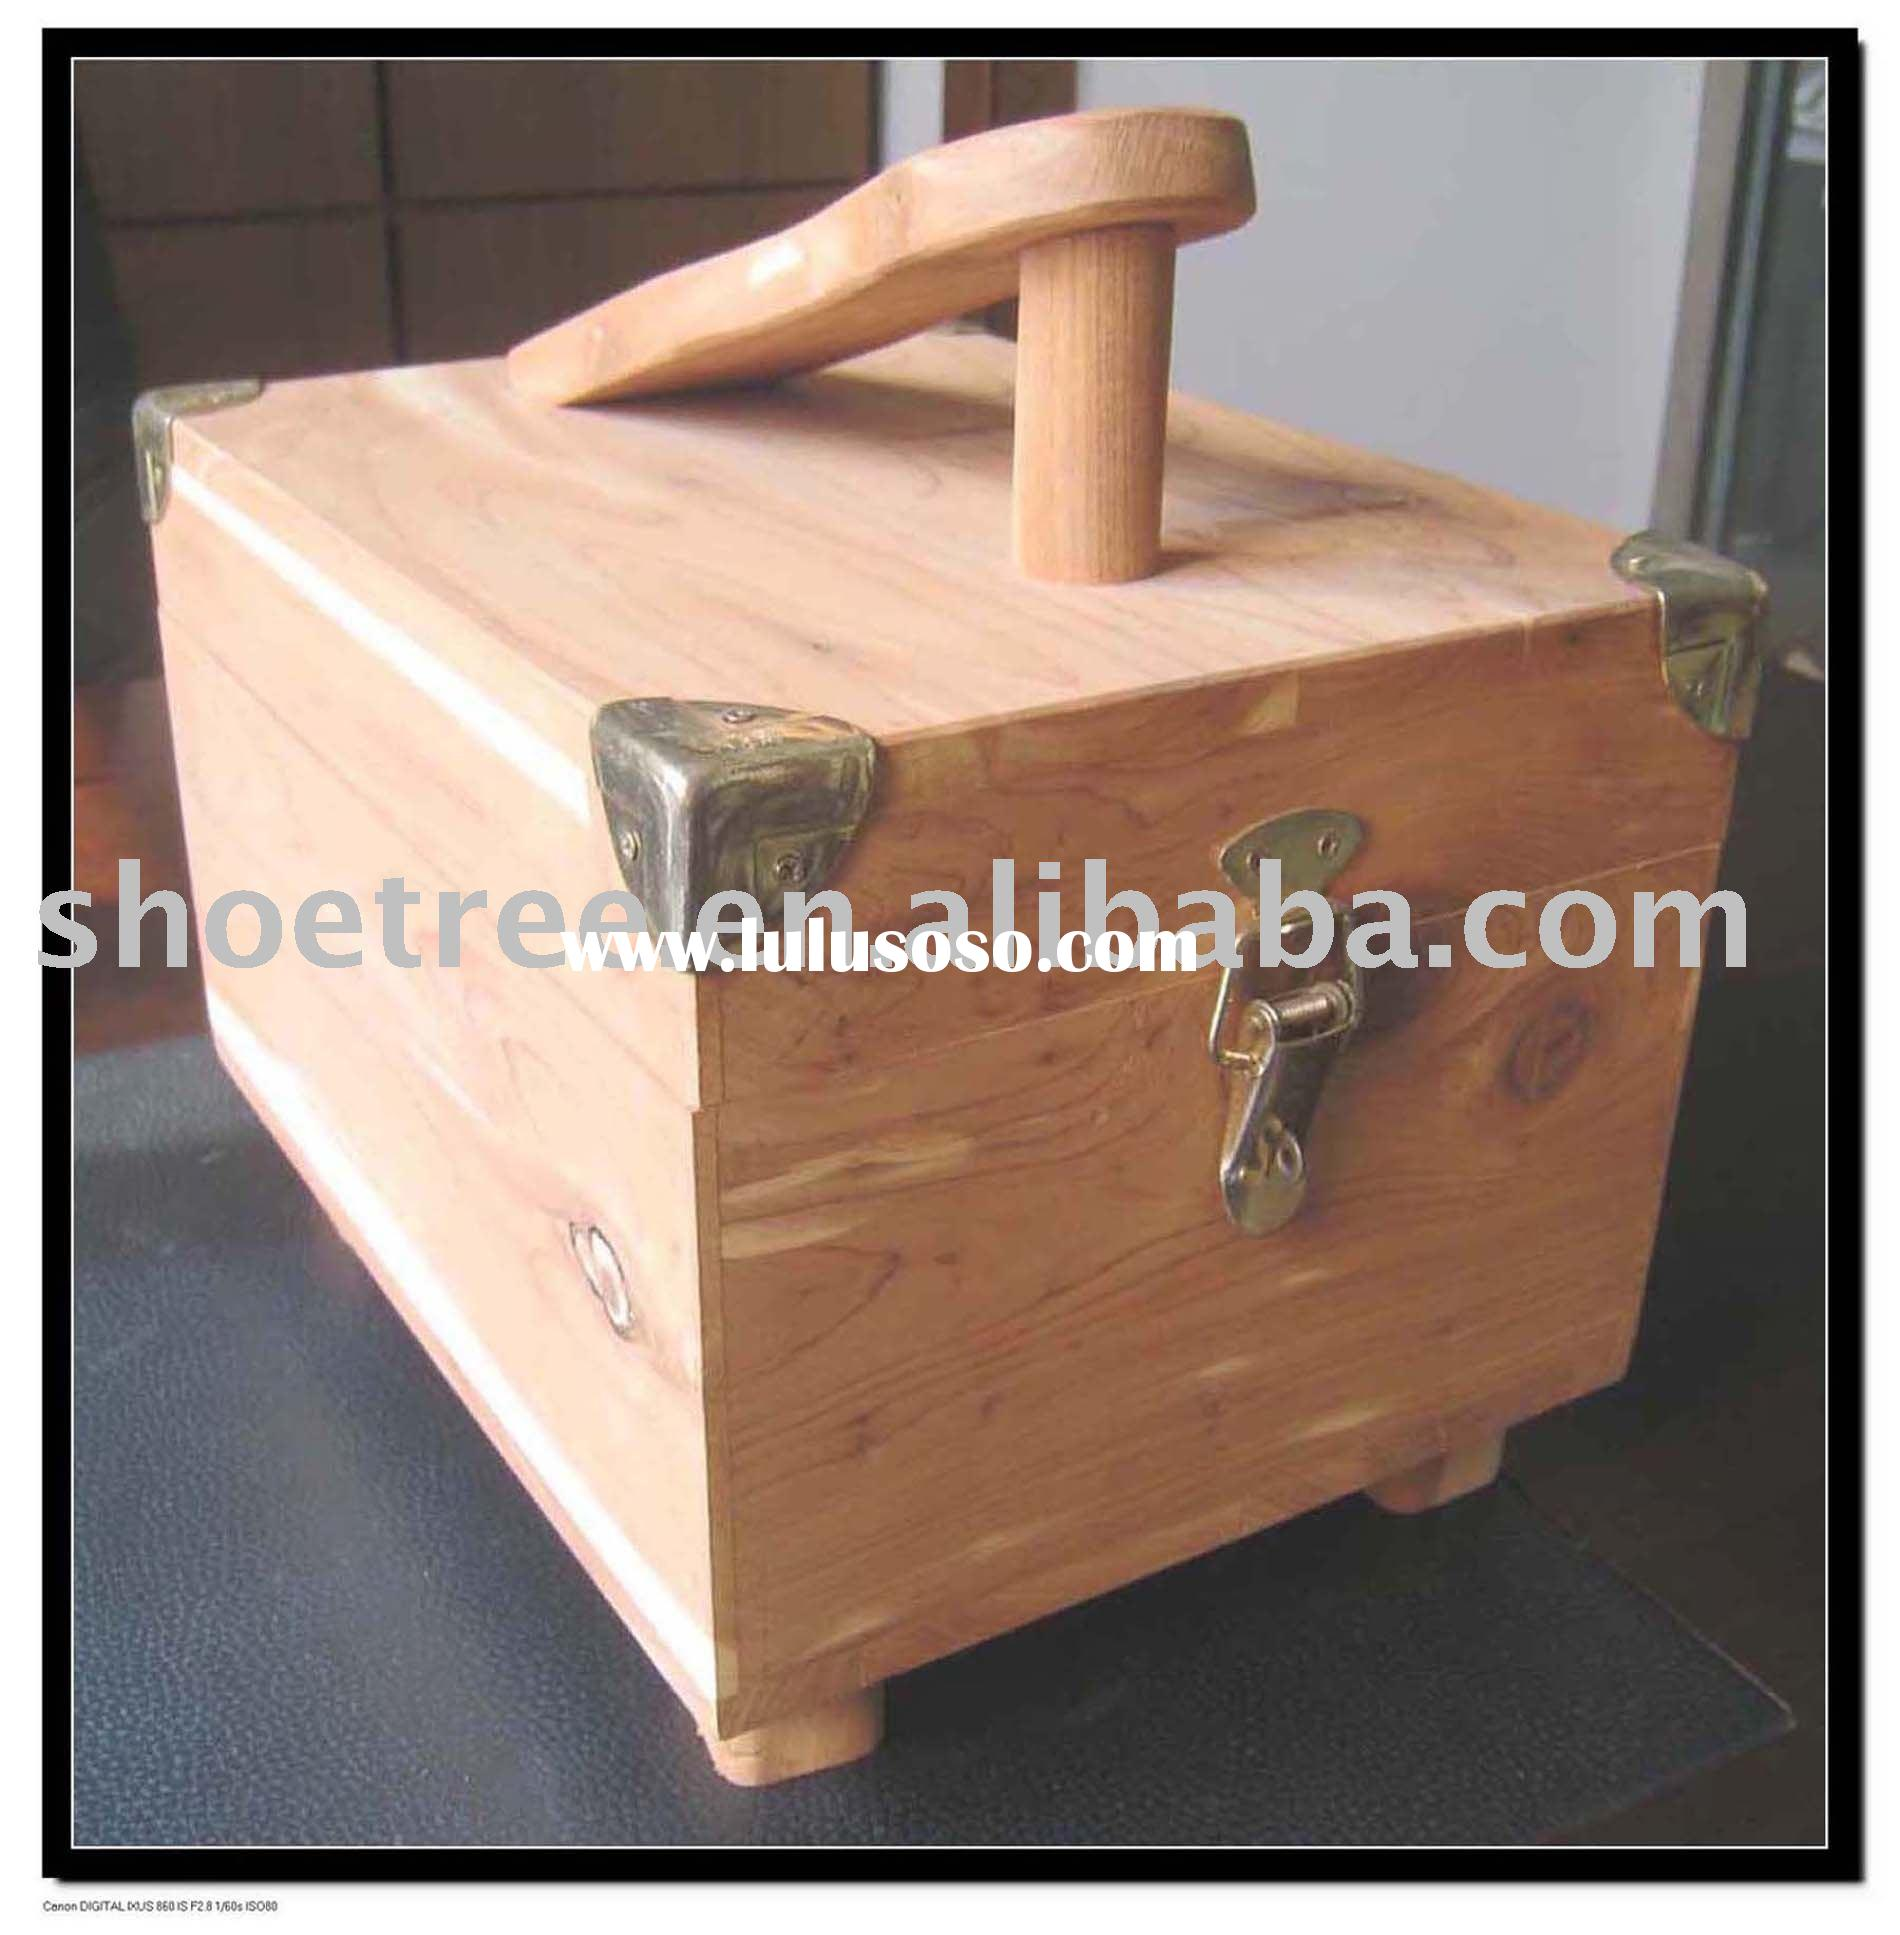 wooden shoe shine box for sale price china manufacturer supplier 517111. Black Bedroom Furniture Sets. Home Design Ideas